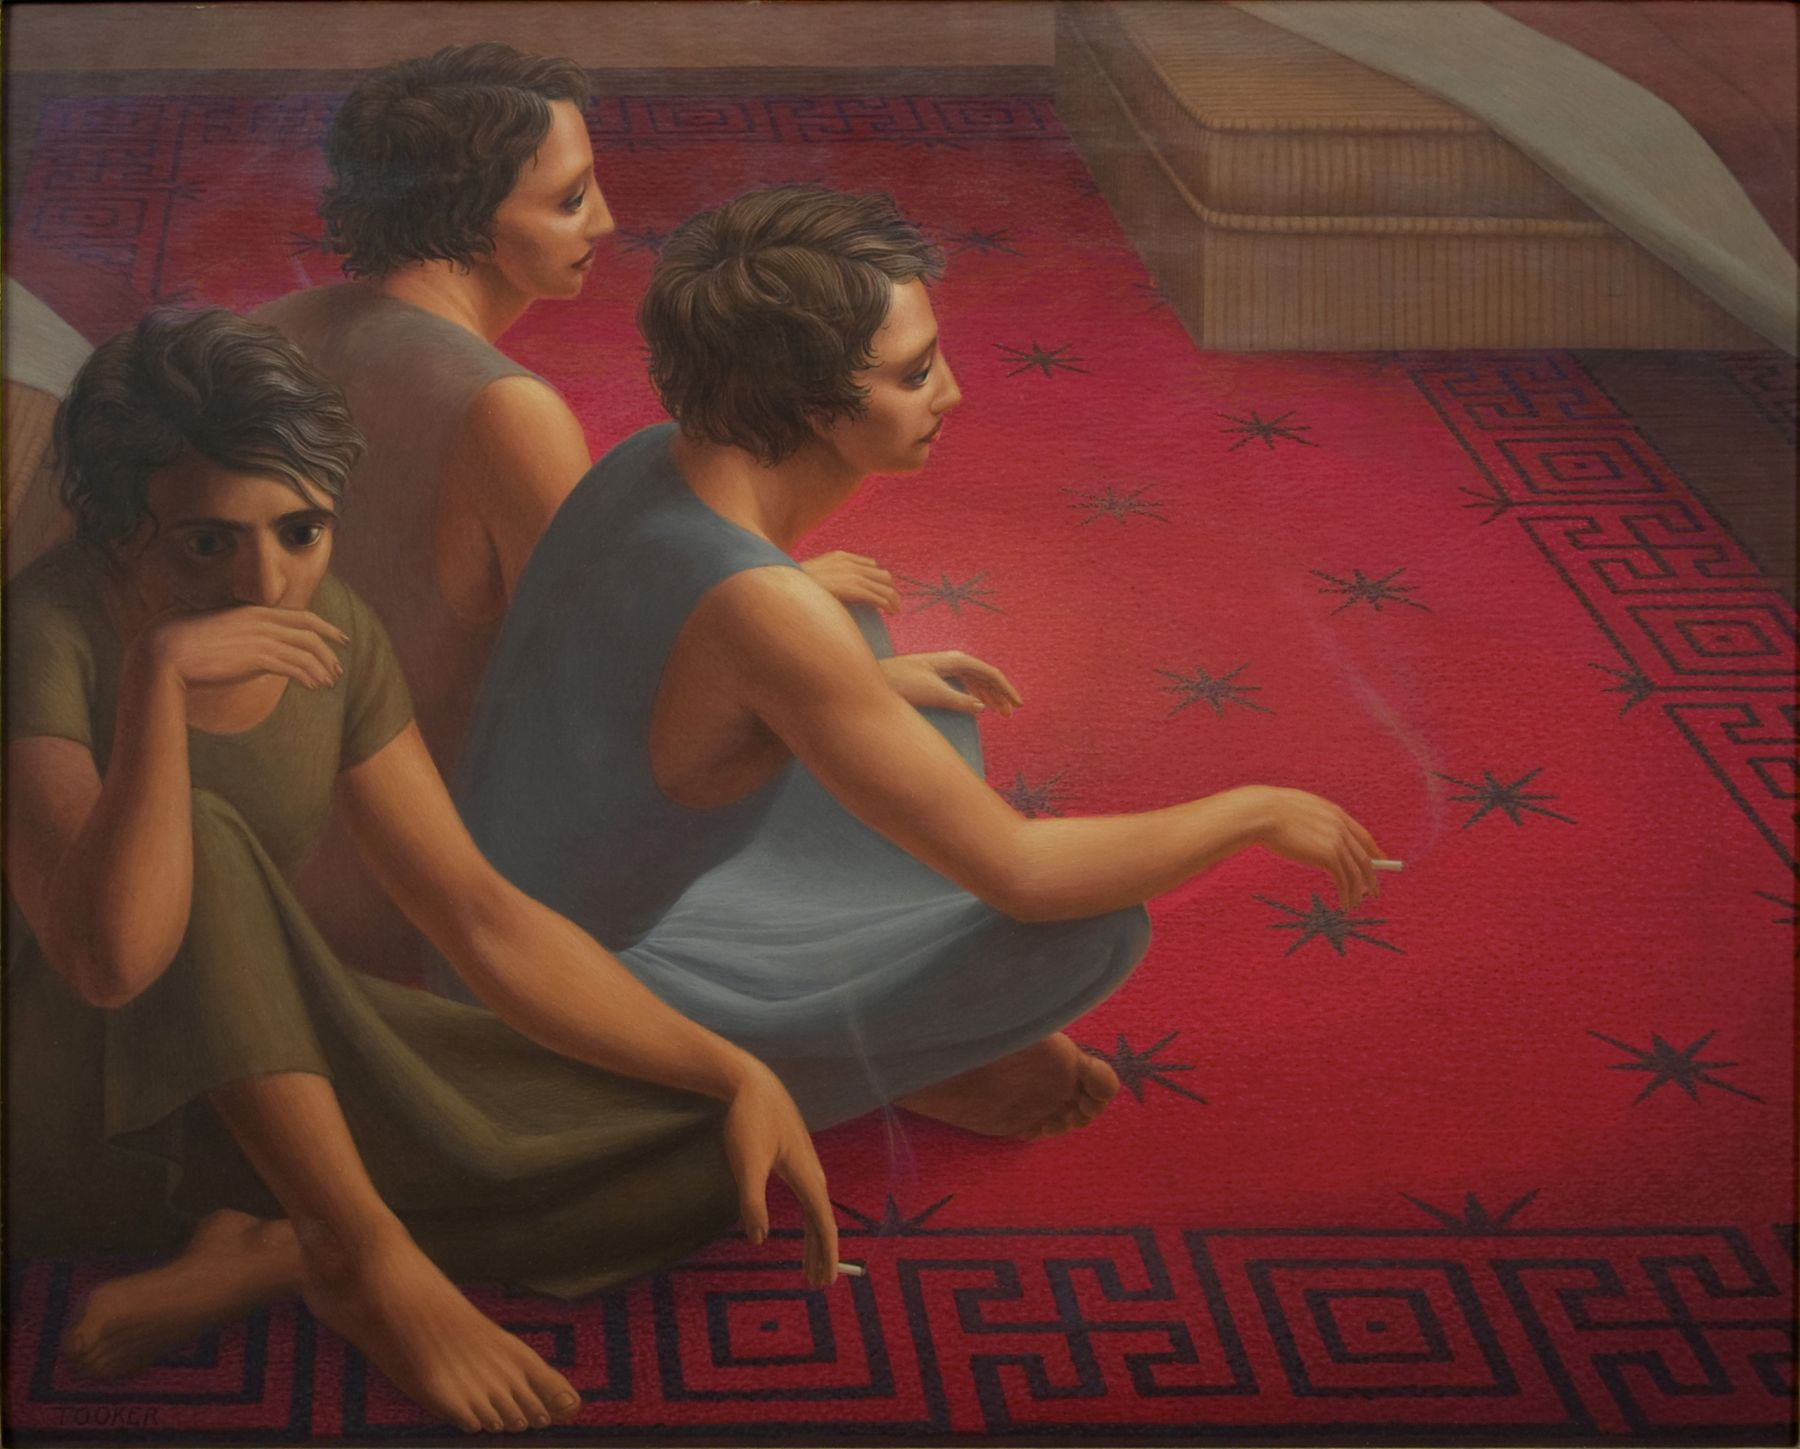 George Tooker, The Red Carpet, 1953, egg tempera on gessoed panel, 16 x 20 1/4 inches